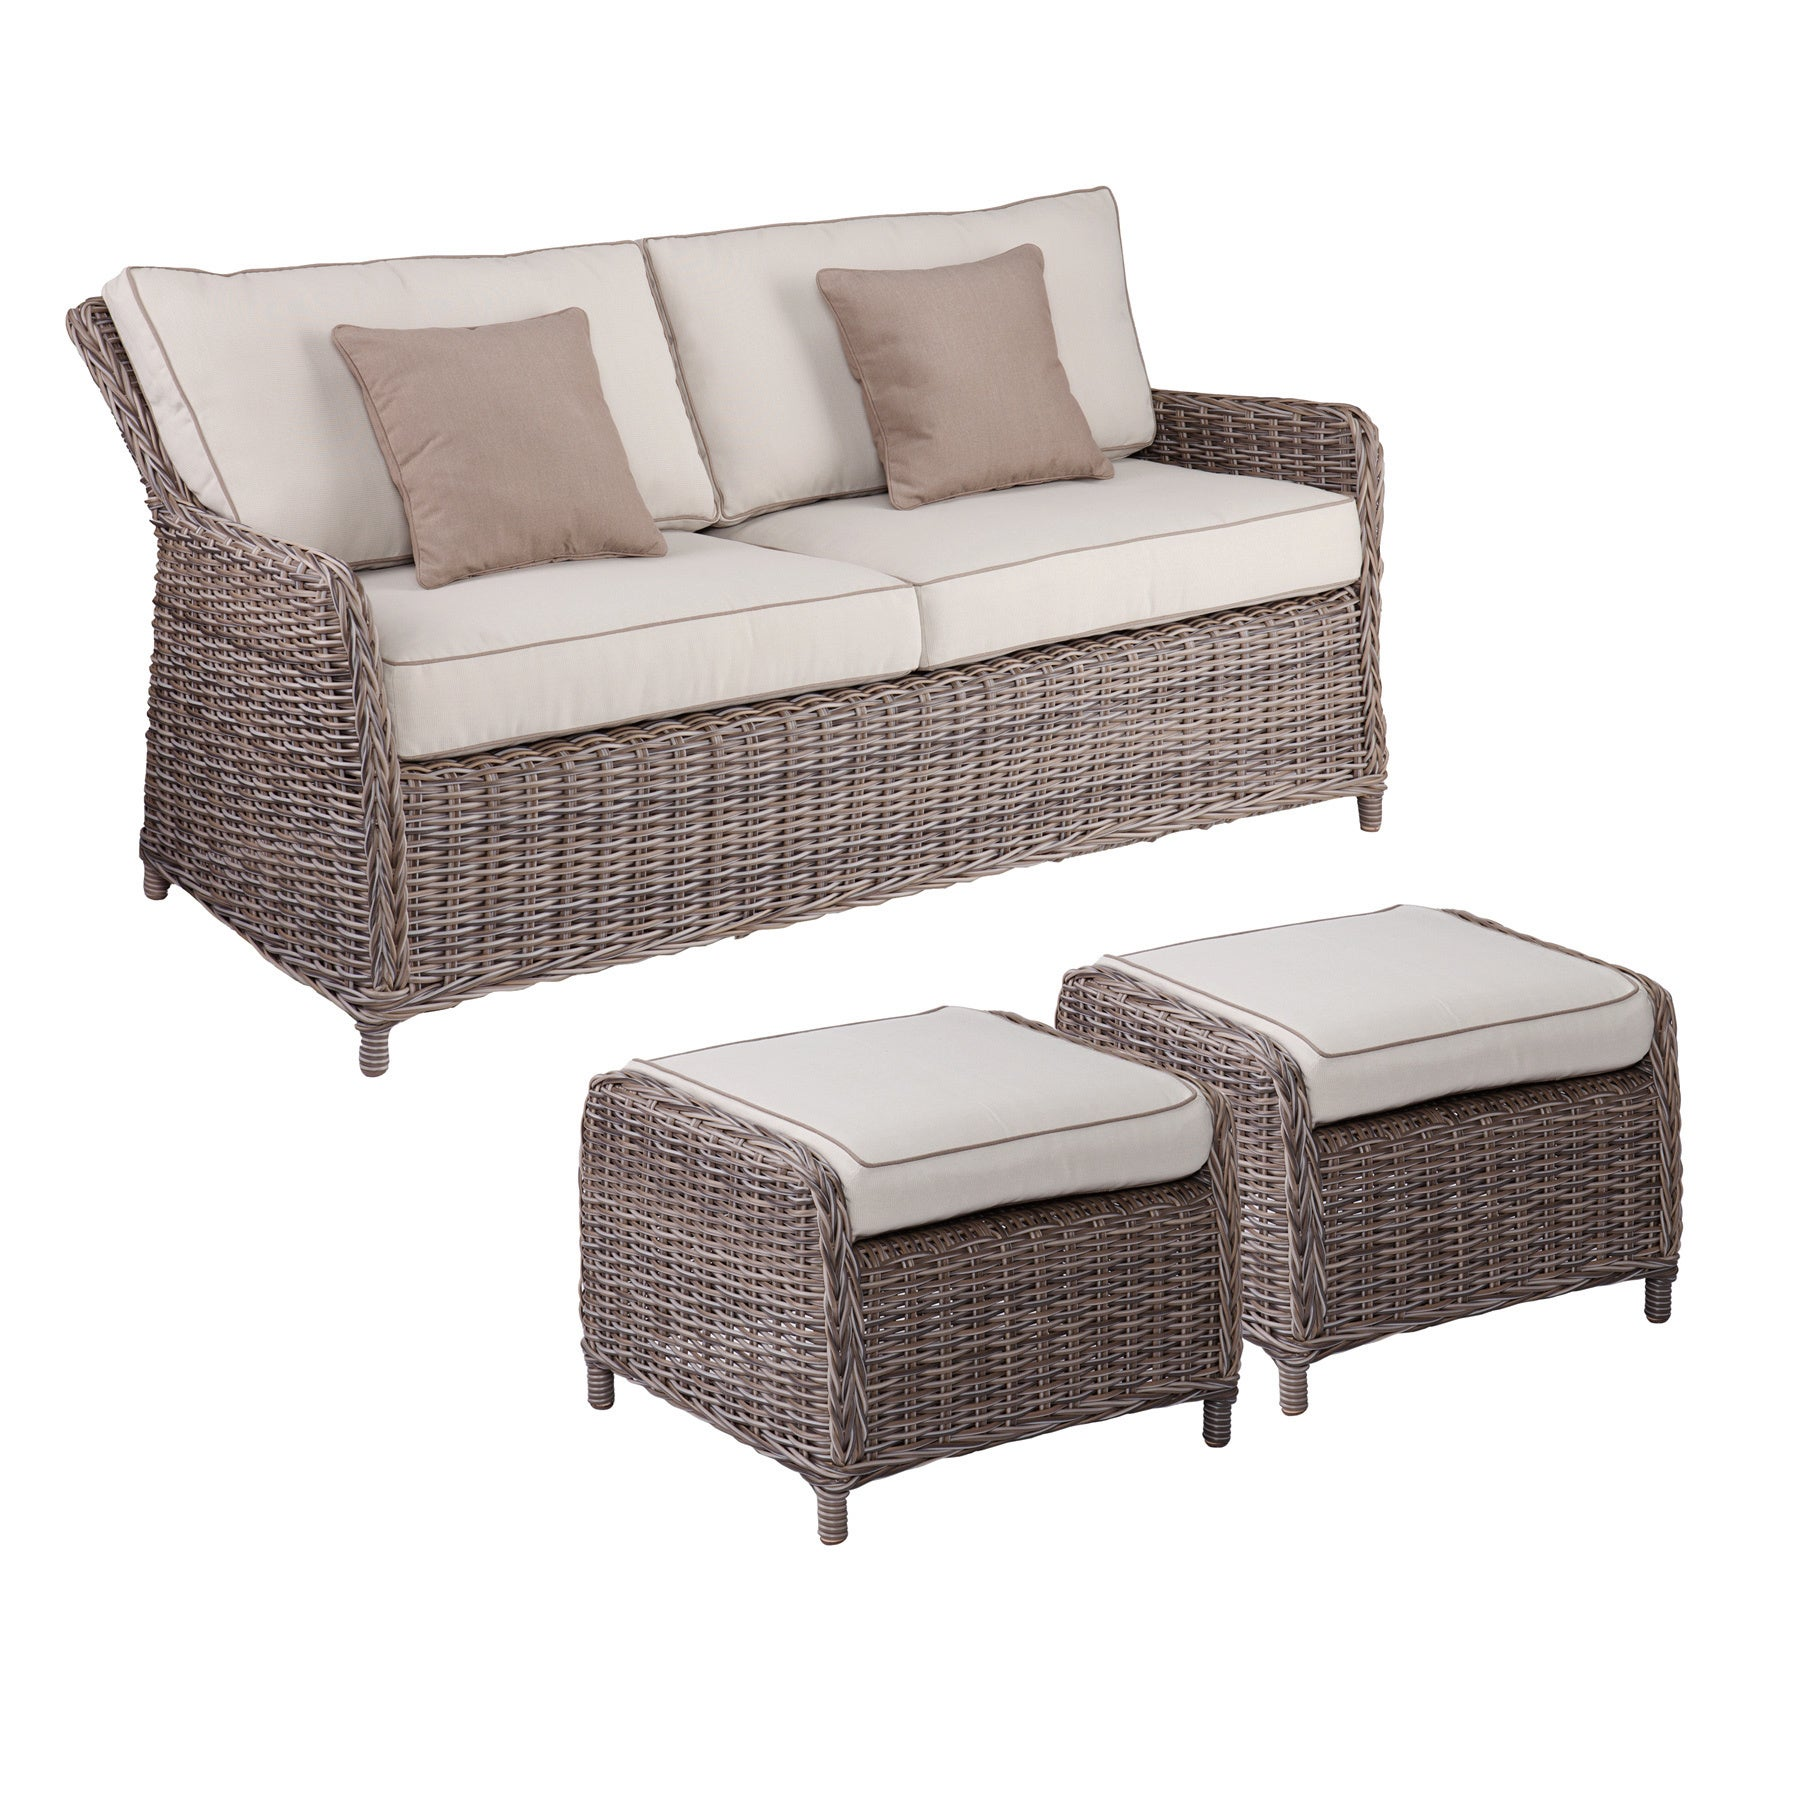 Shop Harper Blvd Imperial Outdoor 2. 5 Seater Sofa and Ottoman 3pc ...